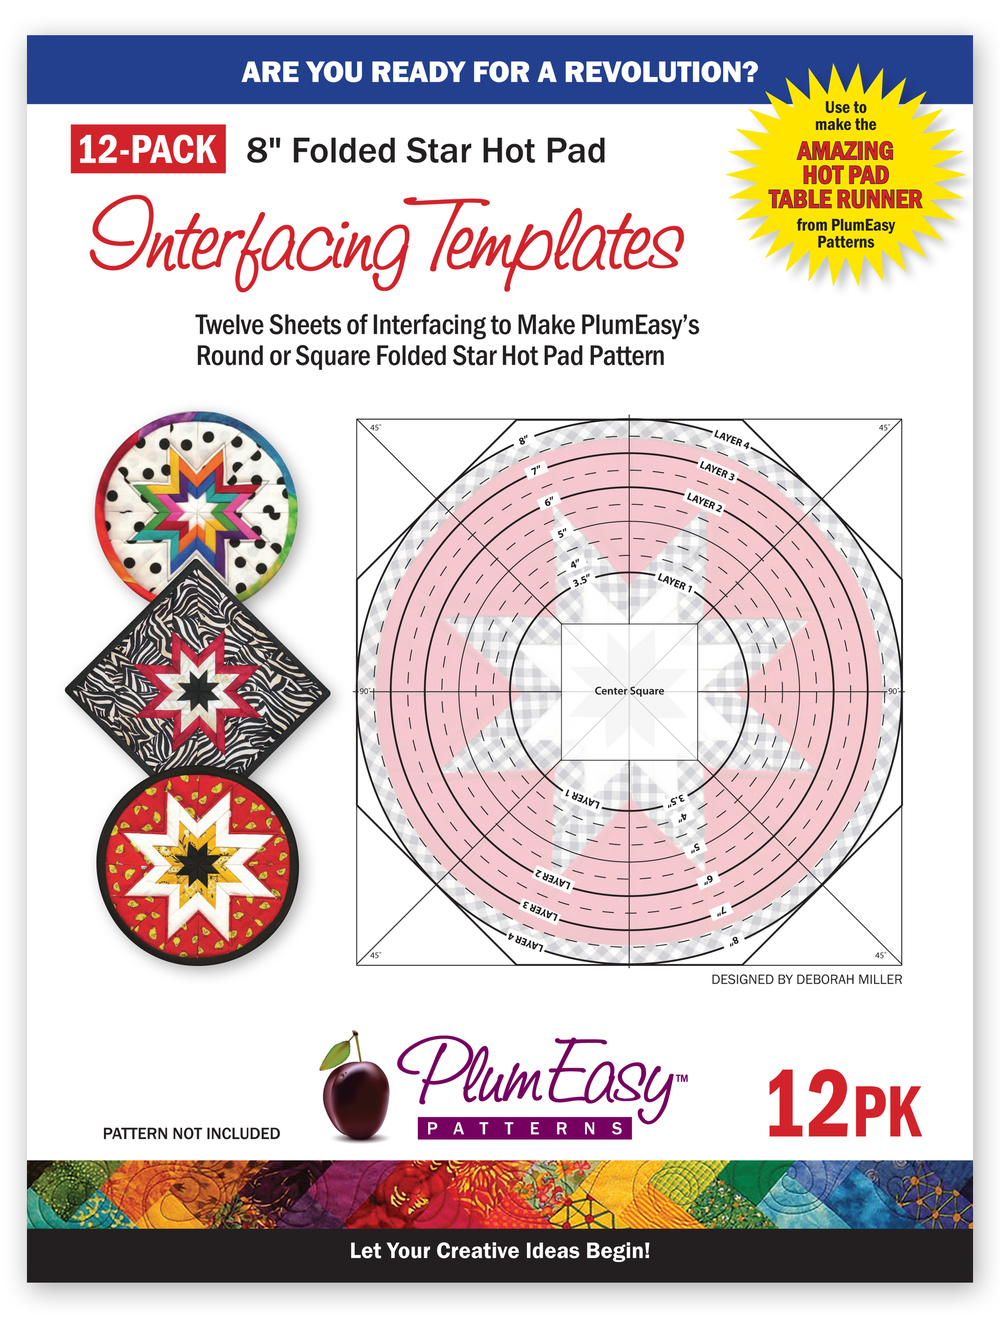 Folded Star Hot Pad Interfacing Templates